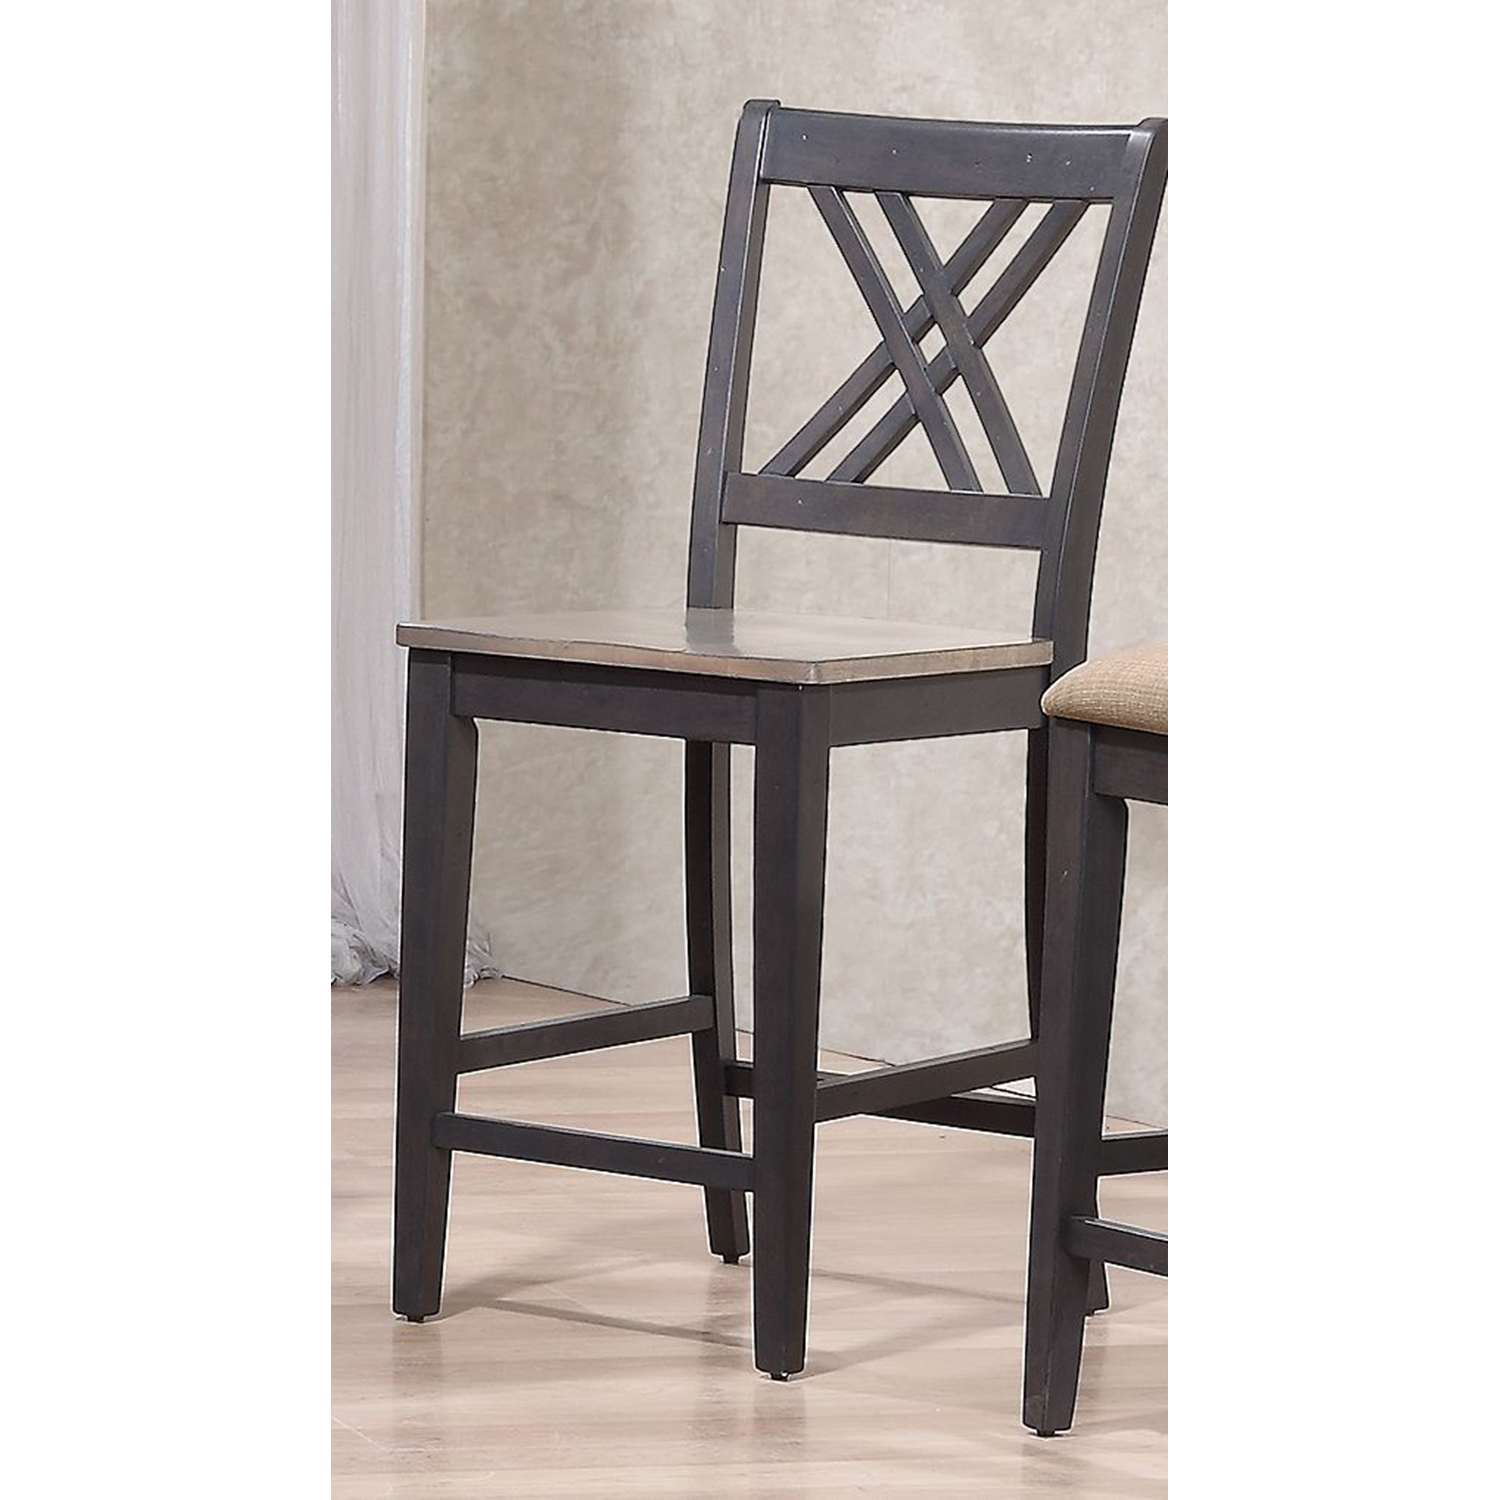 "Double X-Back 24"" Counter Stool - Gray and Black - ICON-STC56-GRS-BKS"